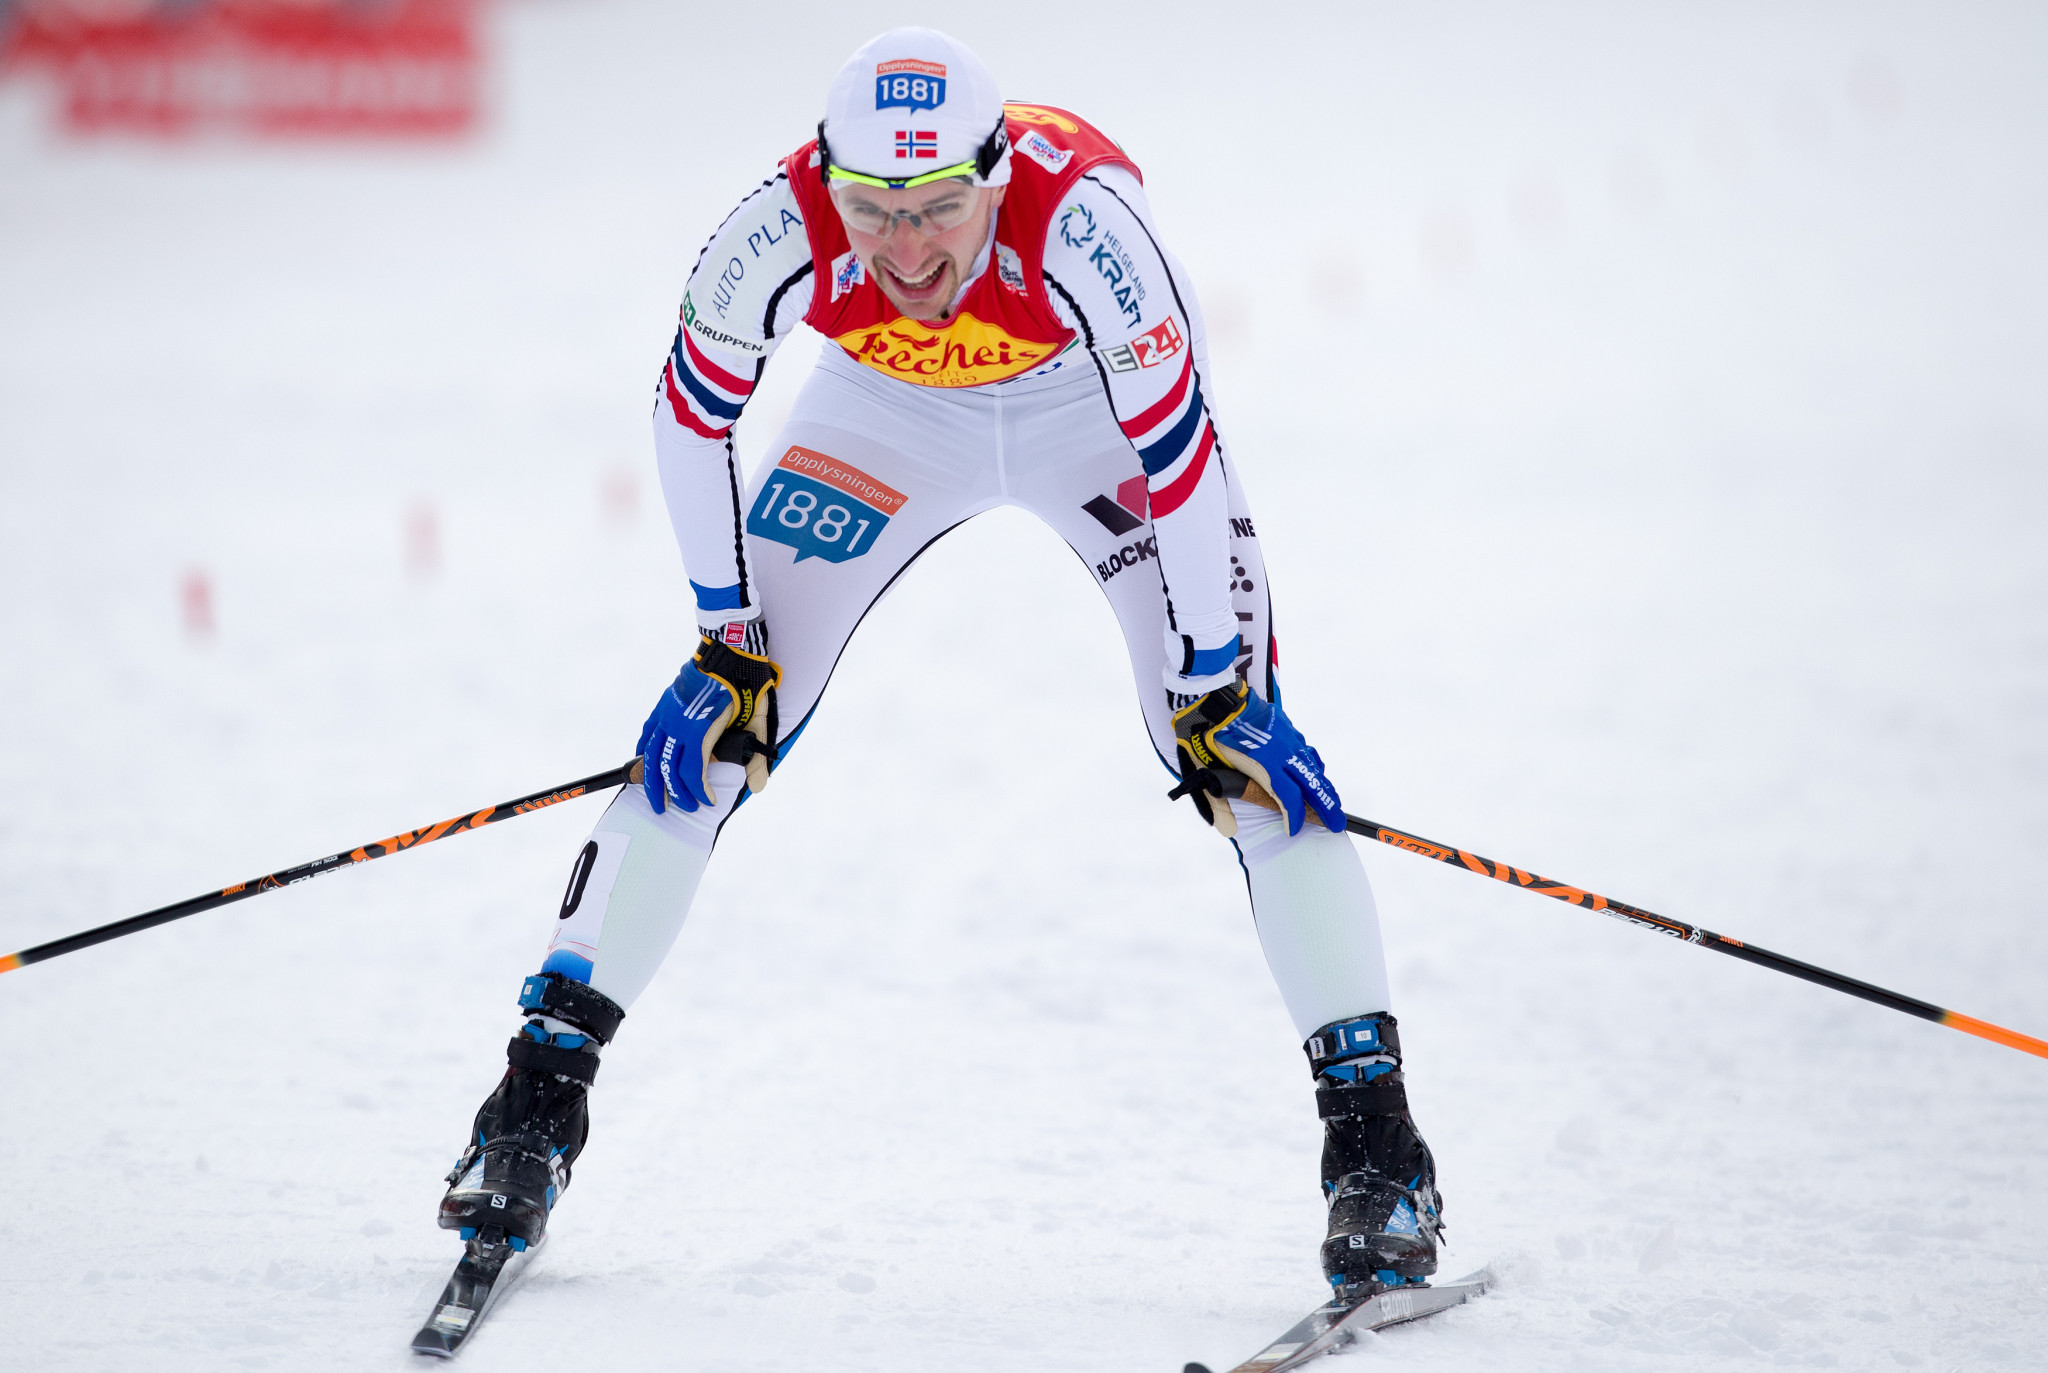 Schmid extends overall lead with victory at FIS Nordic Combined World Cup